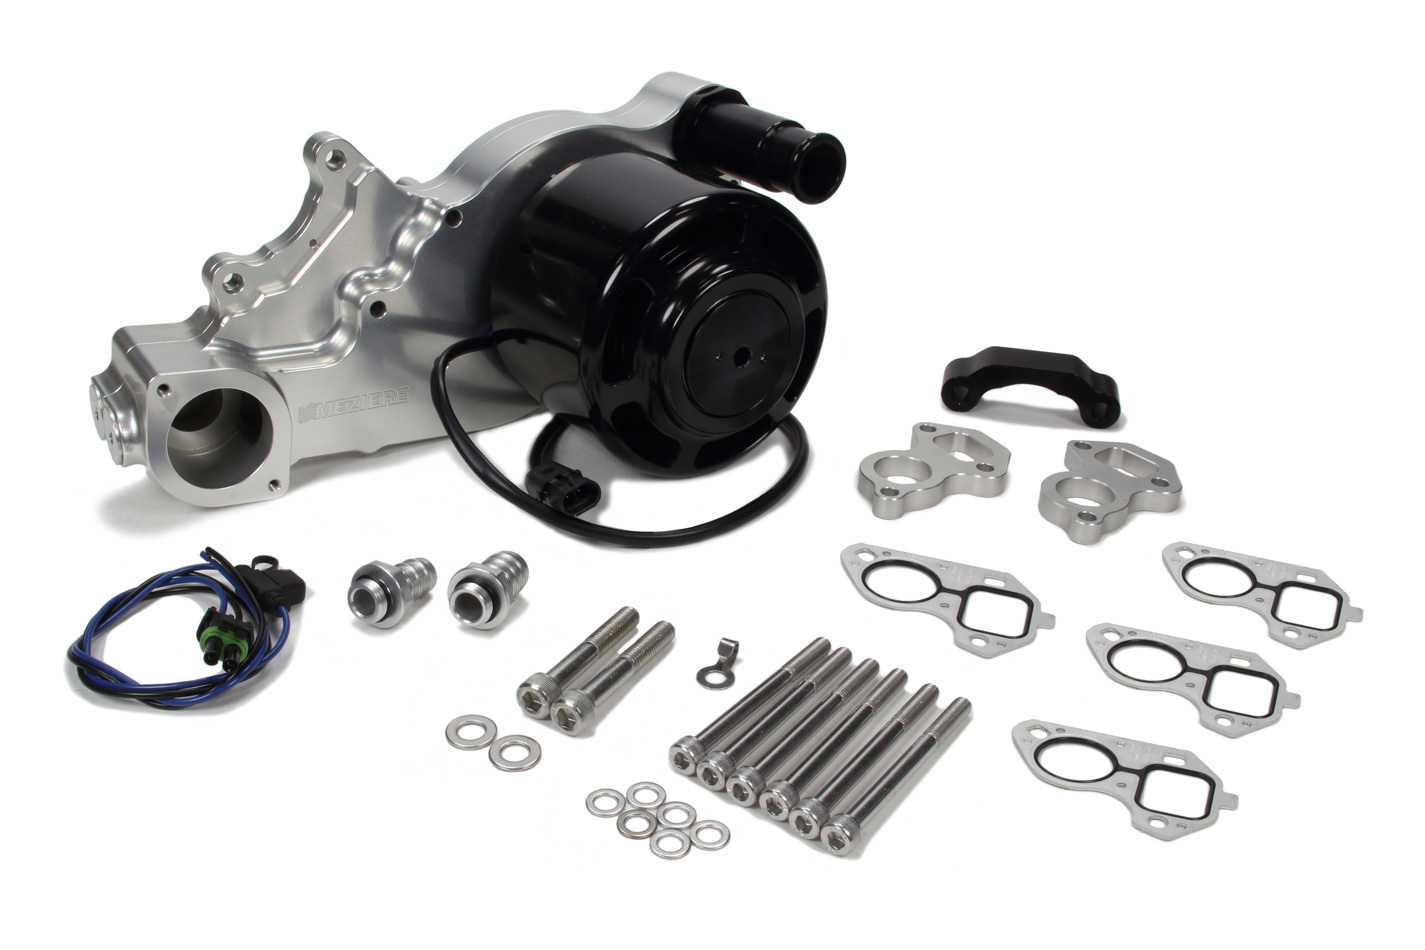 Meziere WP332N Water Pump, Electric, Street Style, 1-1/4 in Hose Barb Outlet, Gaskets / Hardware / Wiring Included, Aluminum, Natural, Supercharged, GM LS-Series, COPO, Chevy Camaro 2013-19, Kit